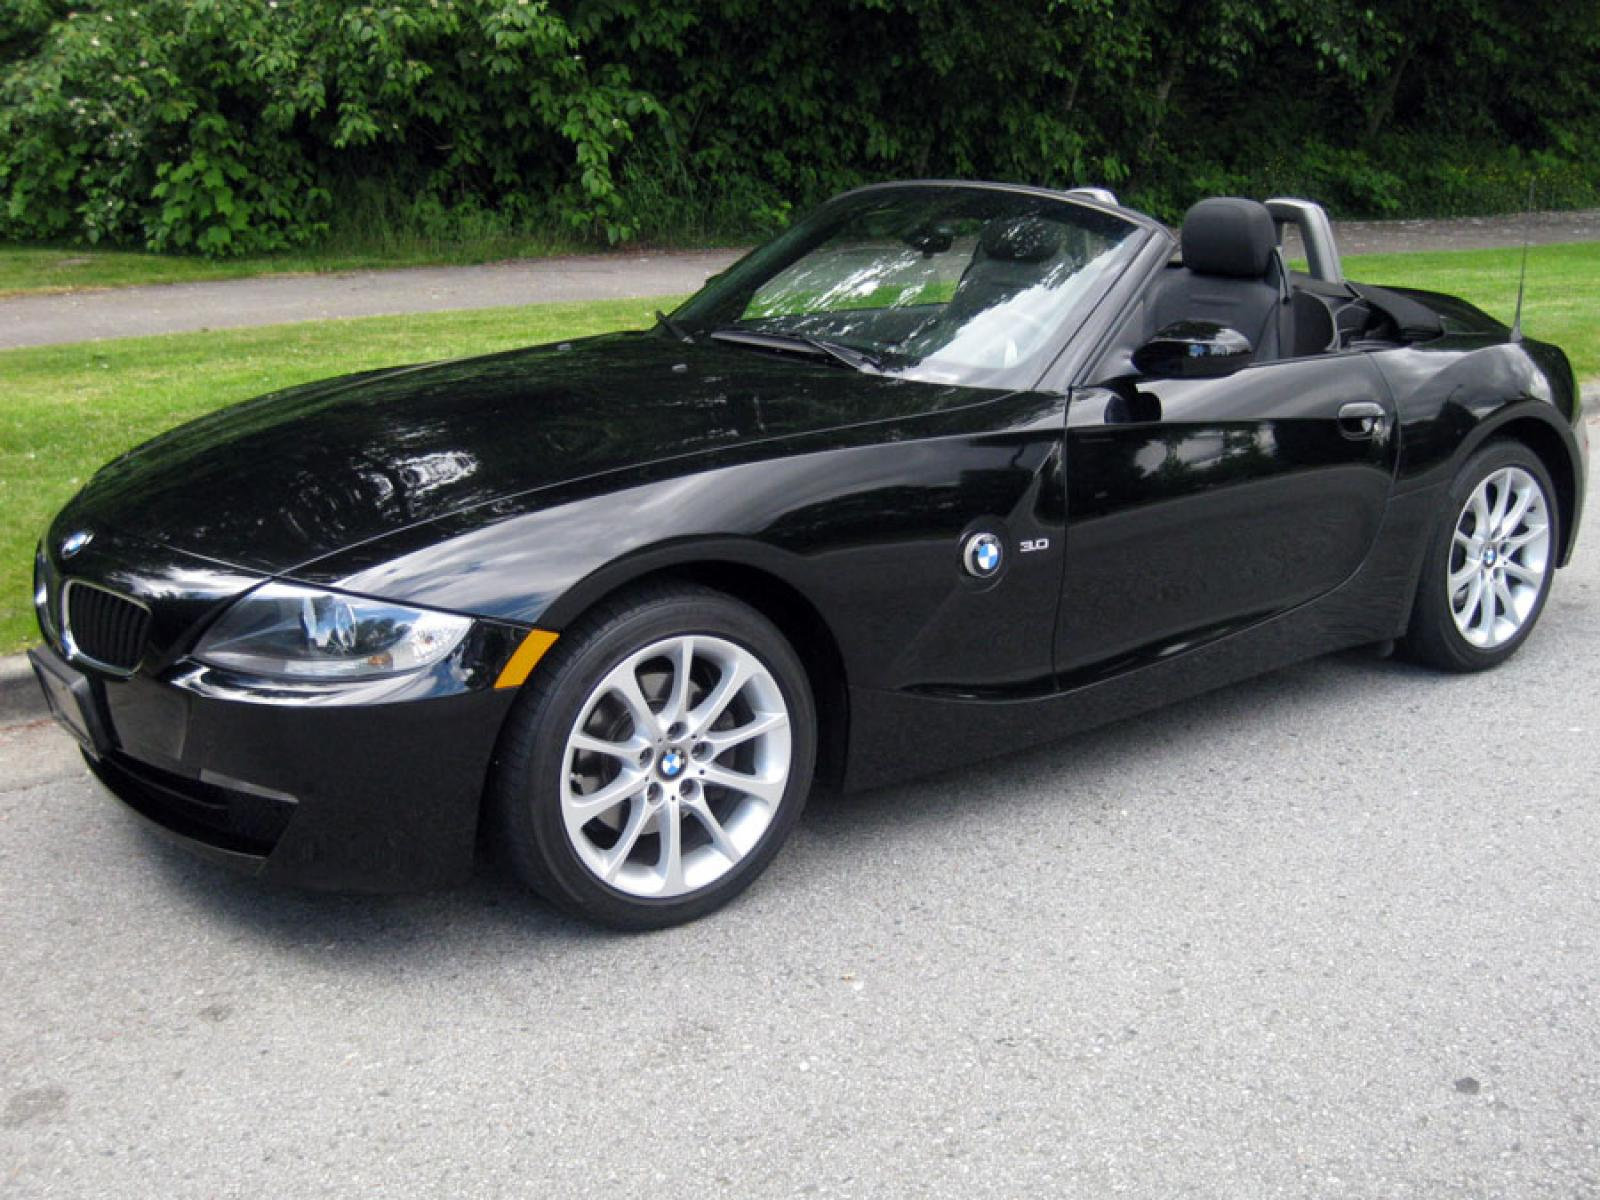 service manual how to hotwire 2008 bmw z4 m image. Black Bedroom Furniture Sets. Home Design Ideas